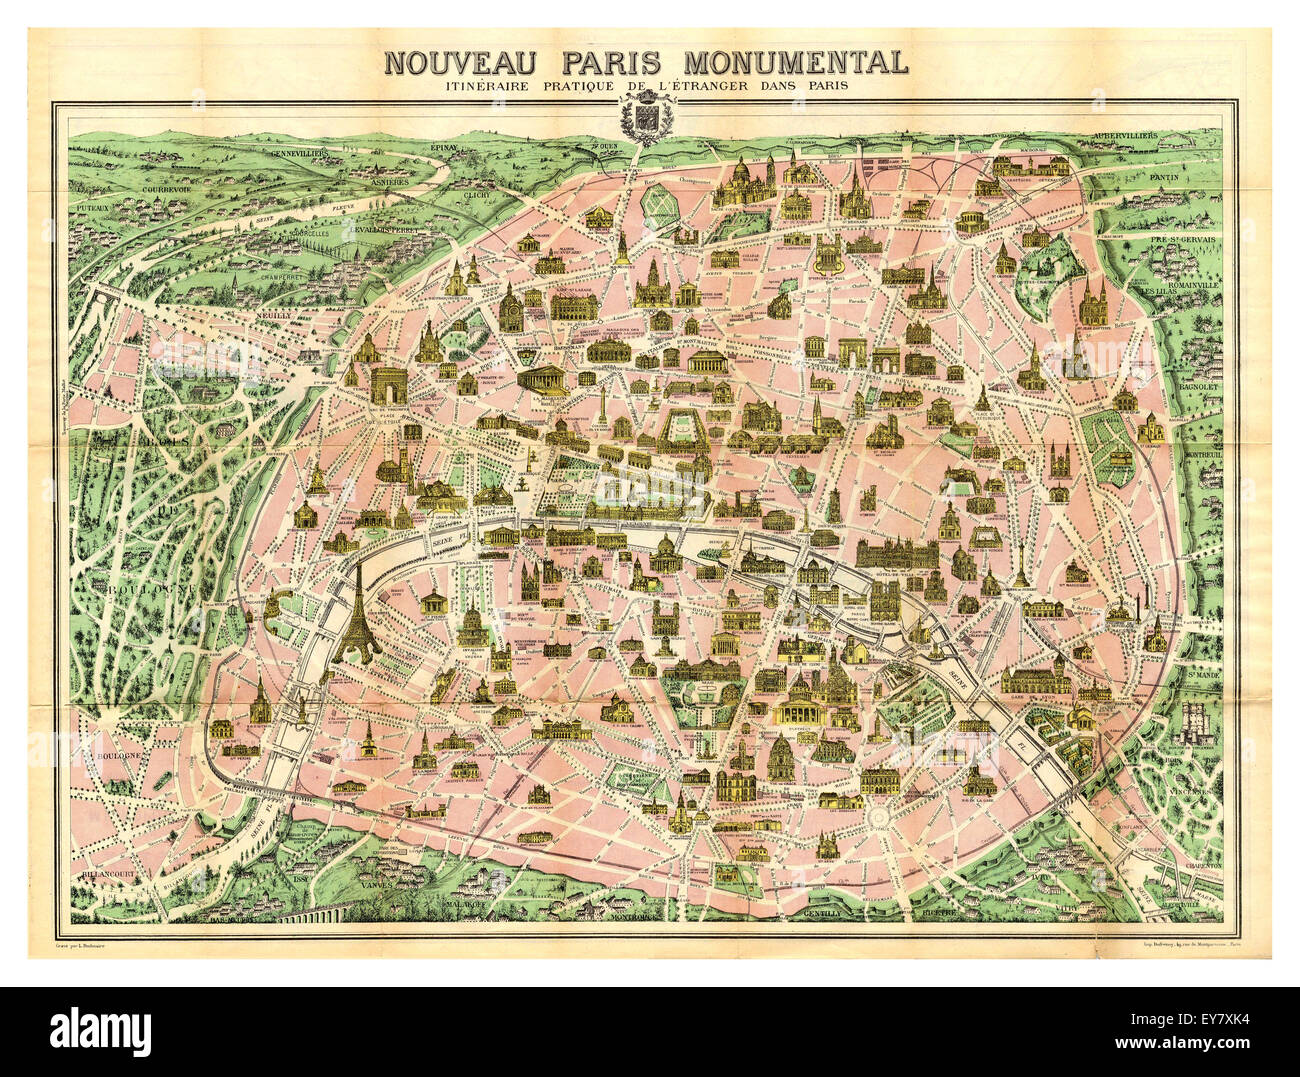 S Historic Old Map Of Important Monuments And Buildings In - Paris map monuments